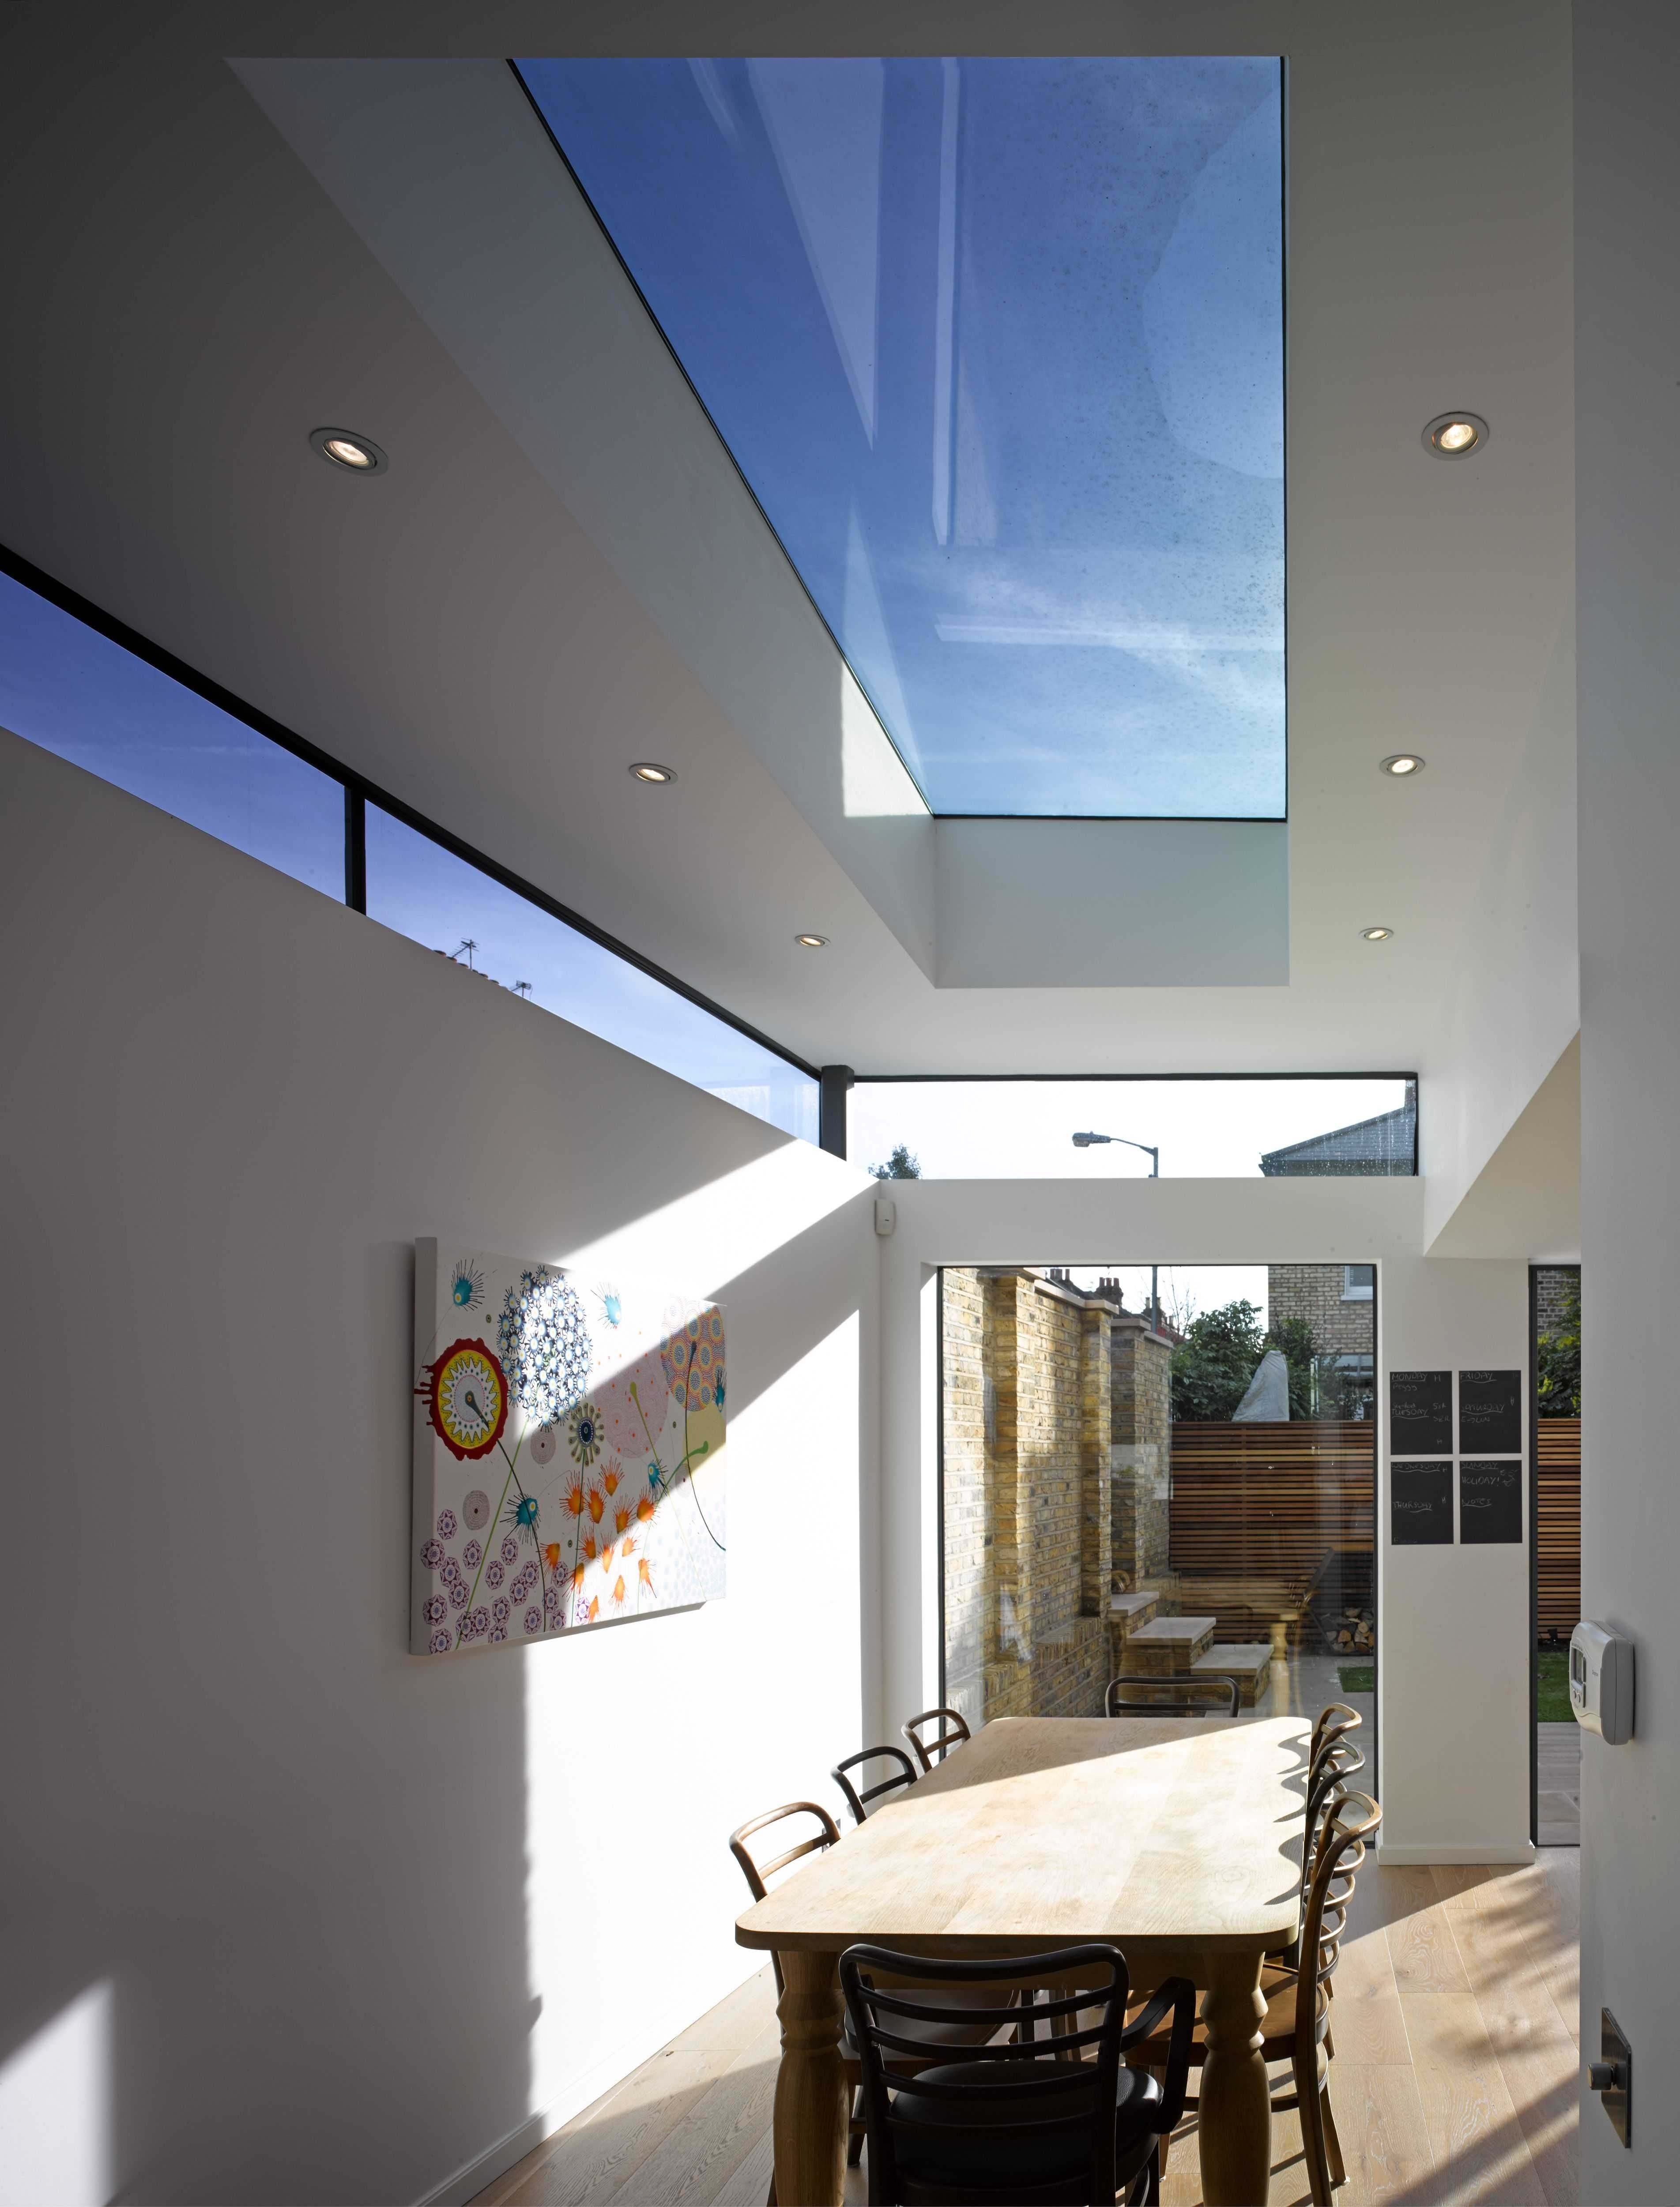 Best 30 Best Of Skylight Ideas To Make Your Space Brighter 400 x 300